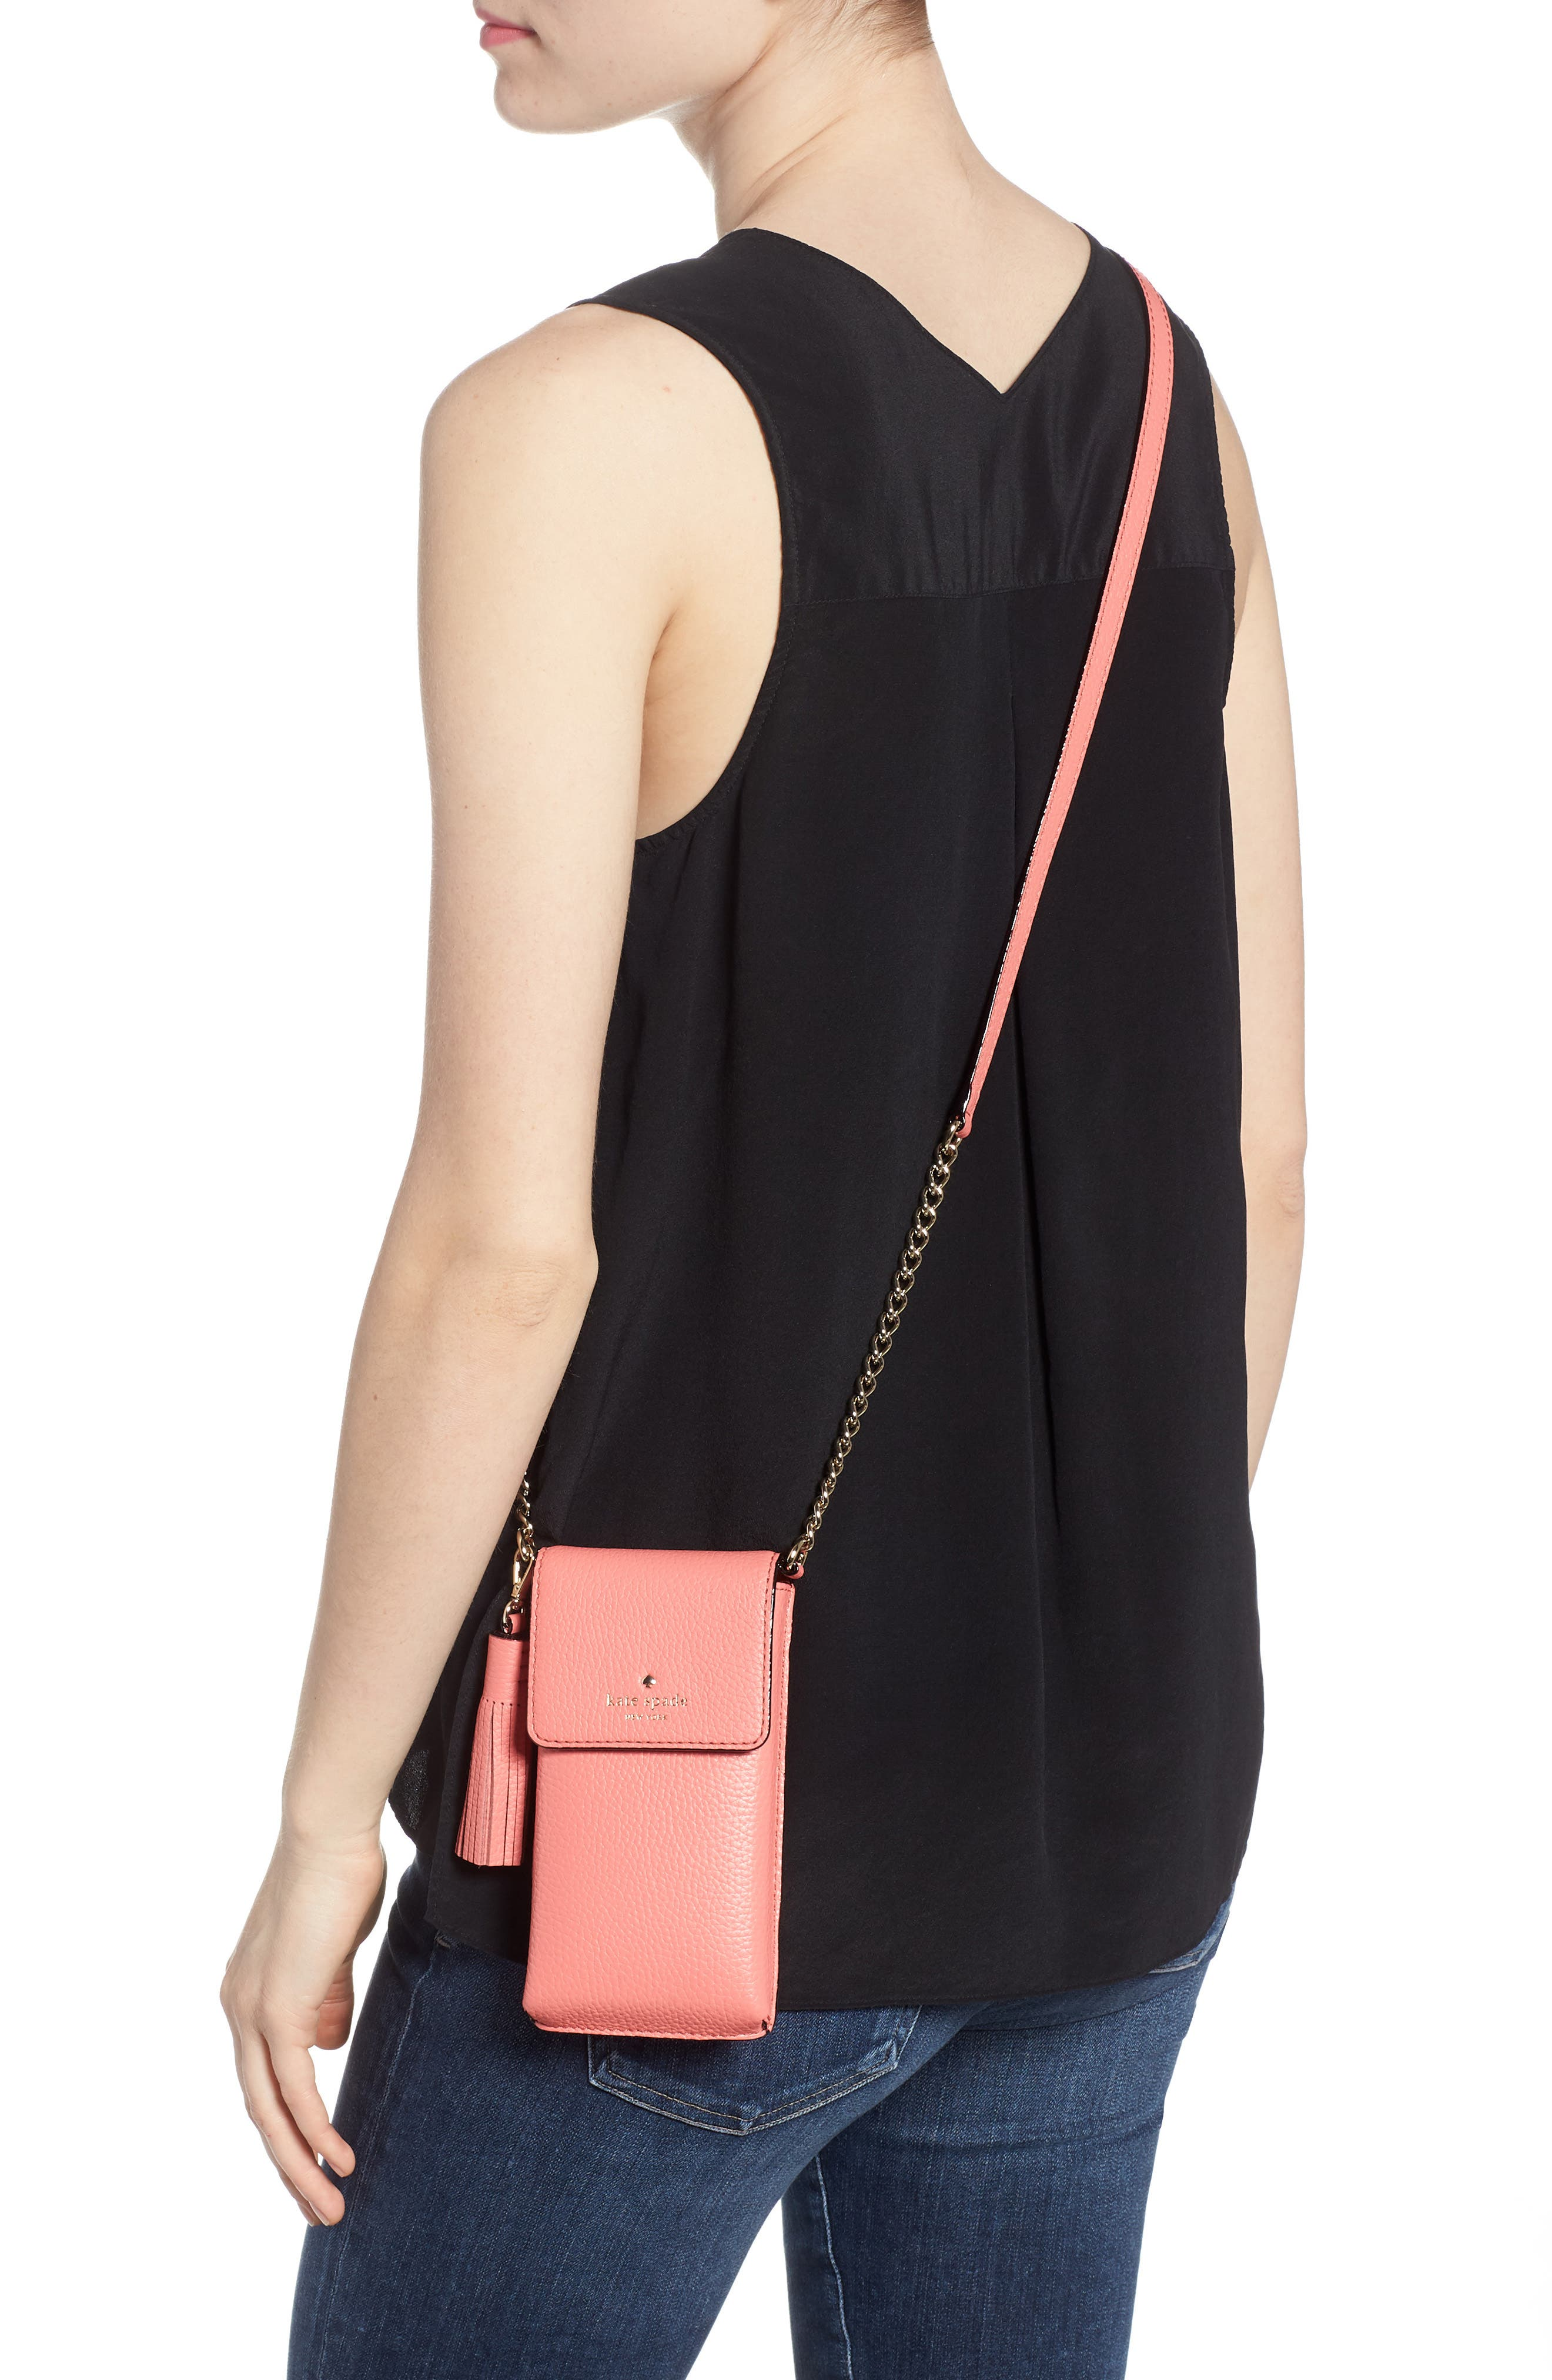 north/south leather smartphone crossbody bag,                             Alternate thumbnail 2, color,                             CORAL PEBBLE